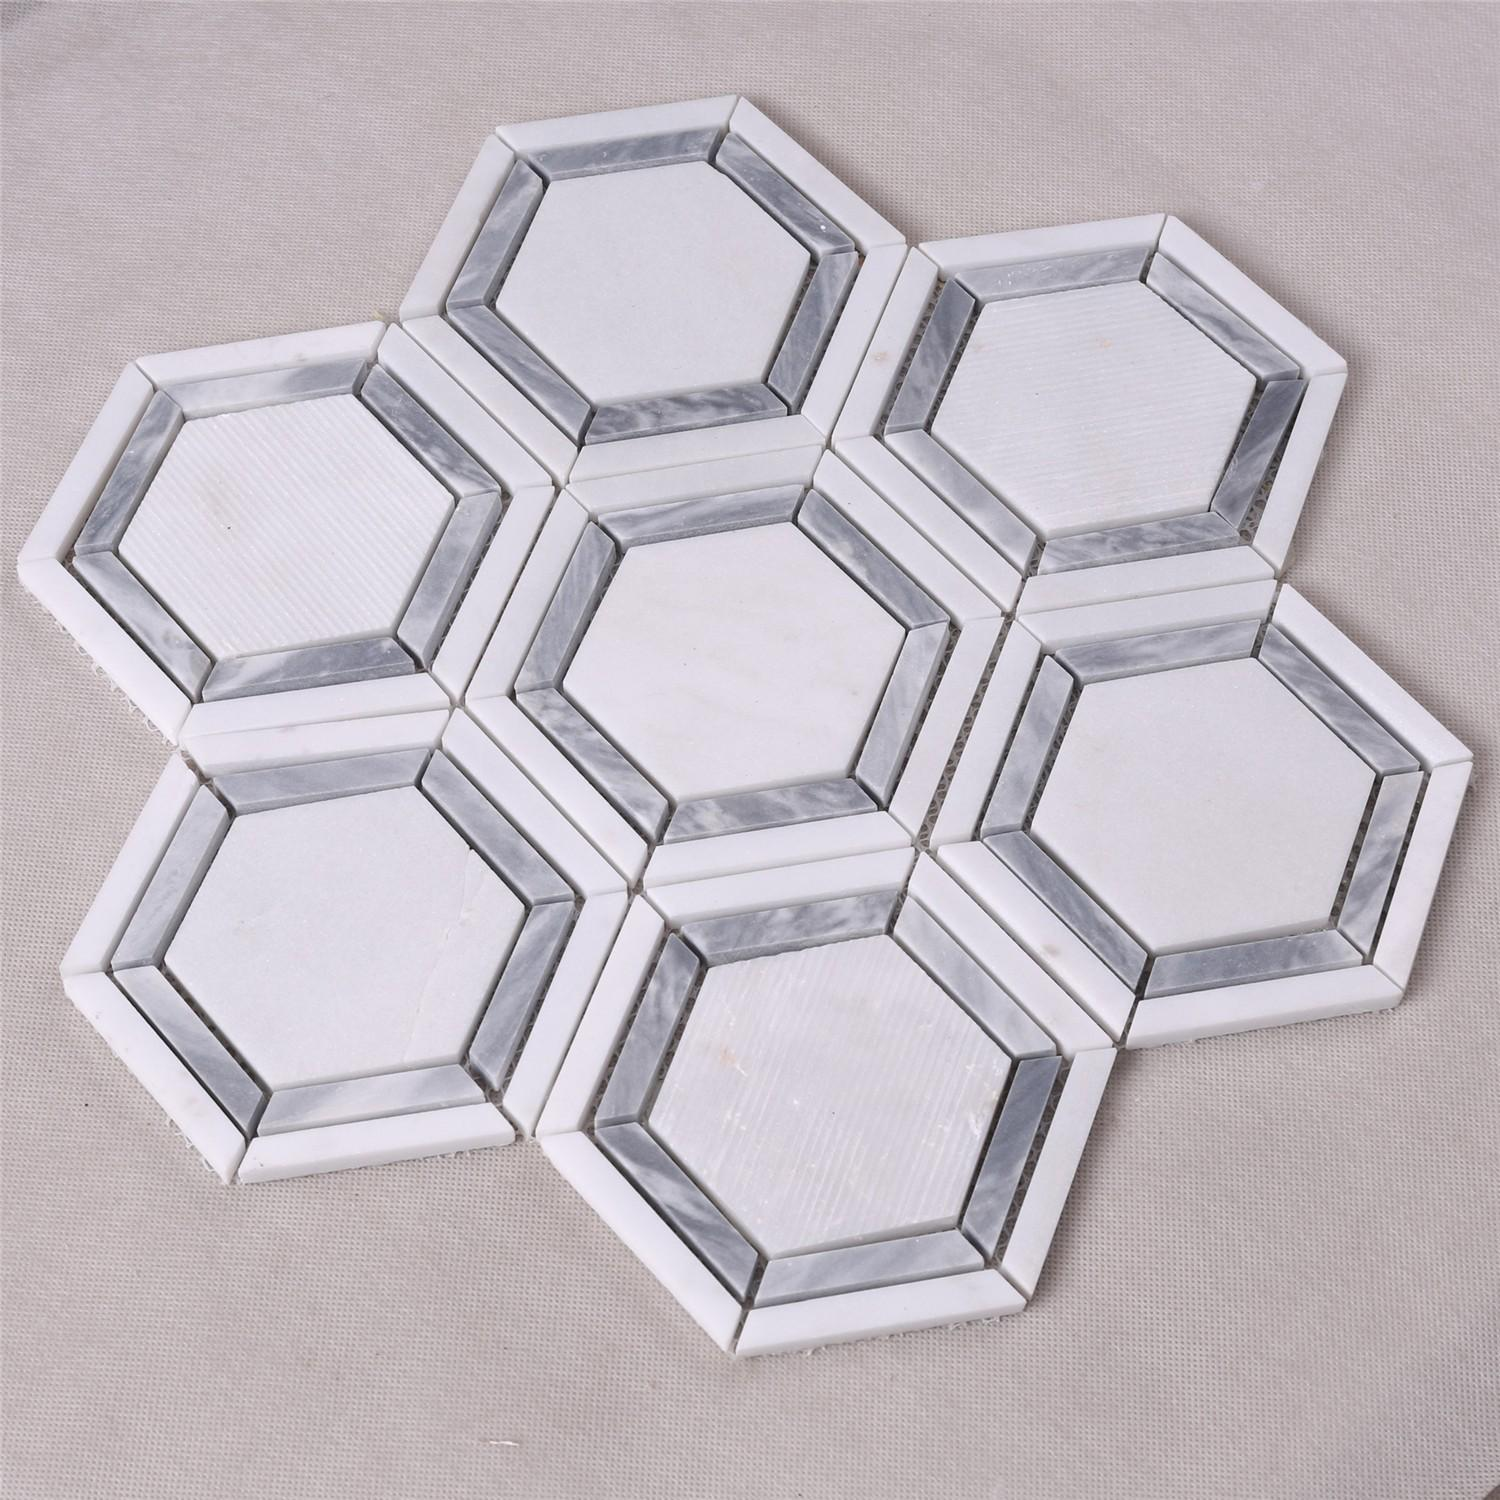 product-Heng Xing-hexagon marble mosaic mosaic tile marble mosaic tile-img